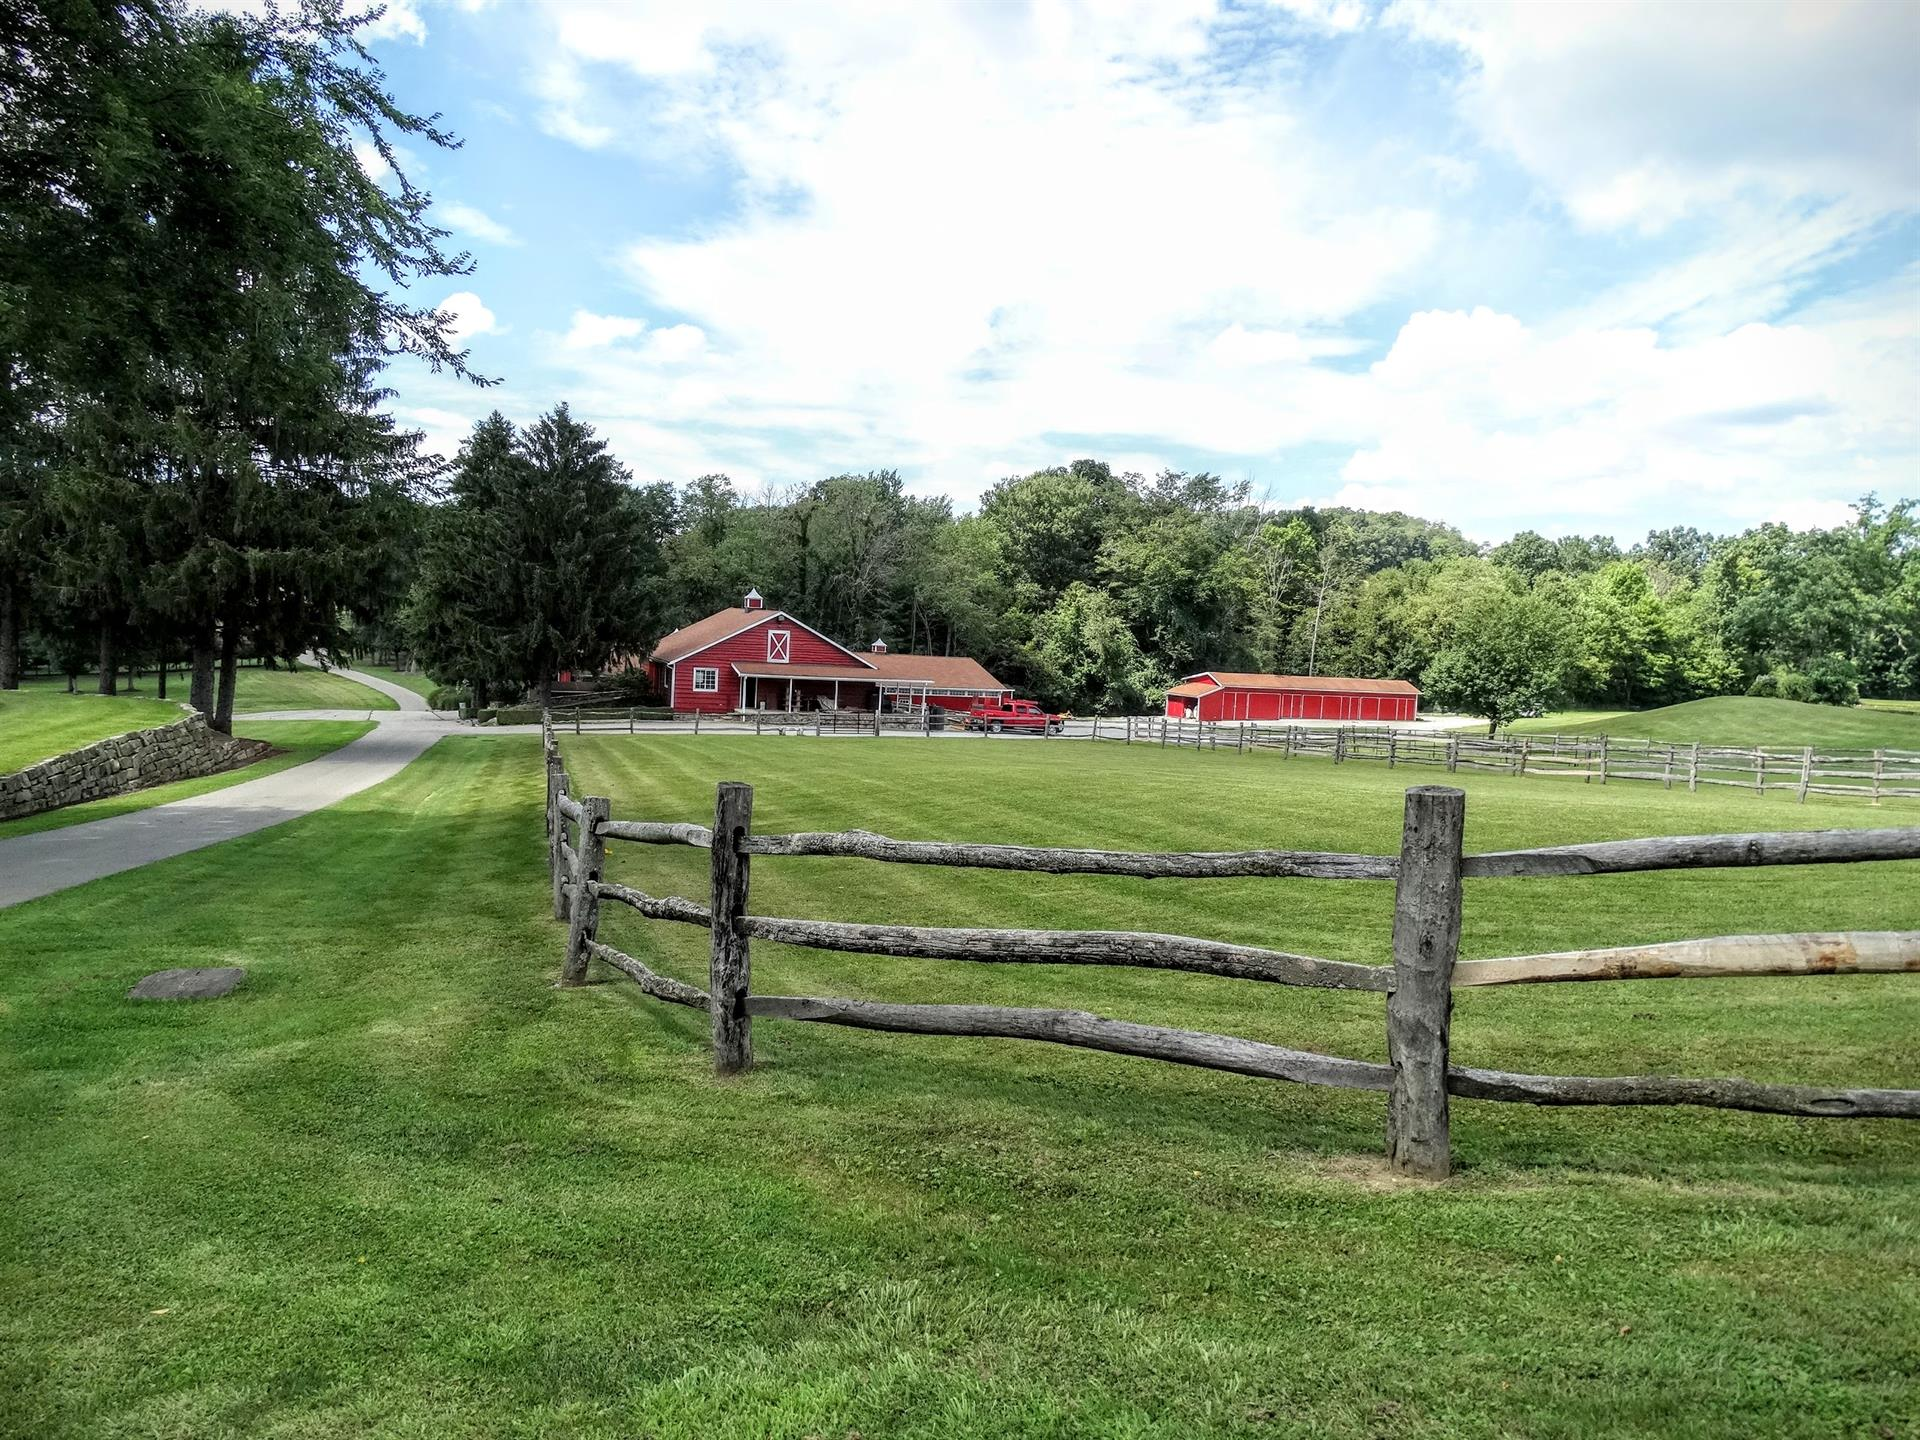 South Equestrian Property